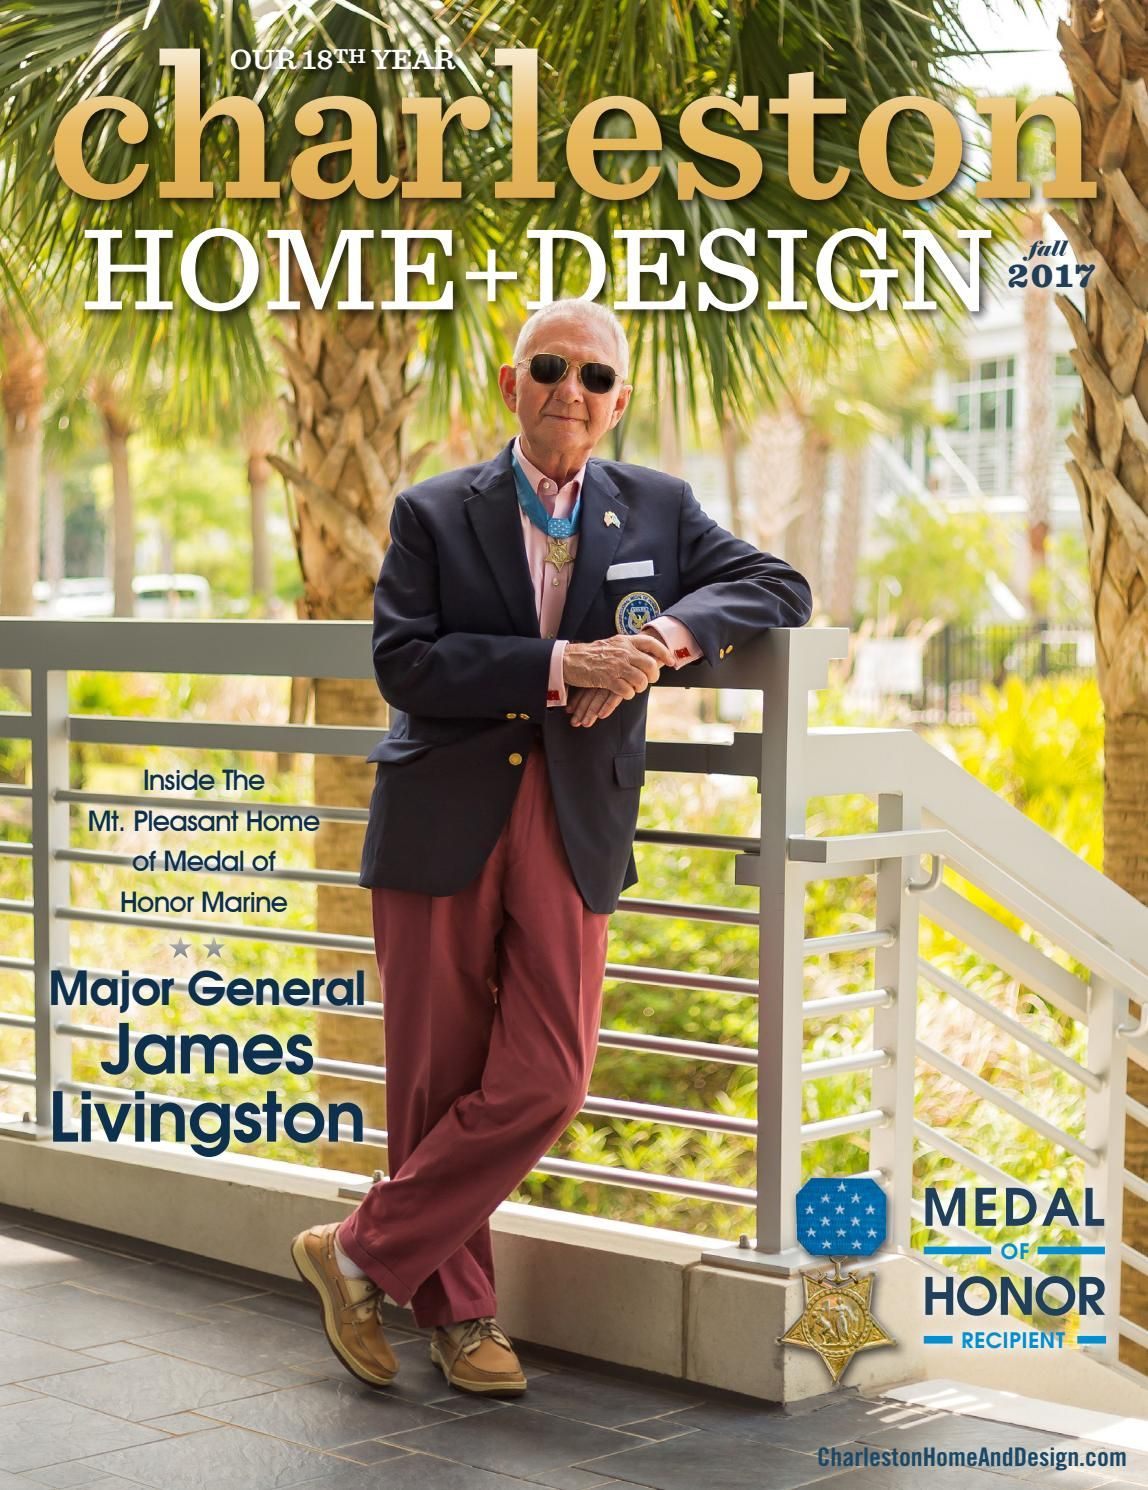 Merveilleux Charleston Home + Design Magazine: Fall 2017